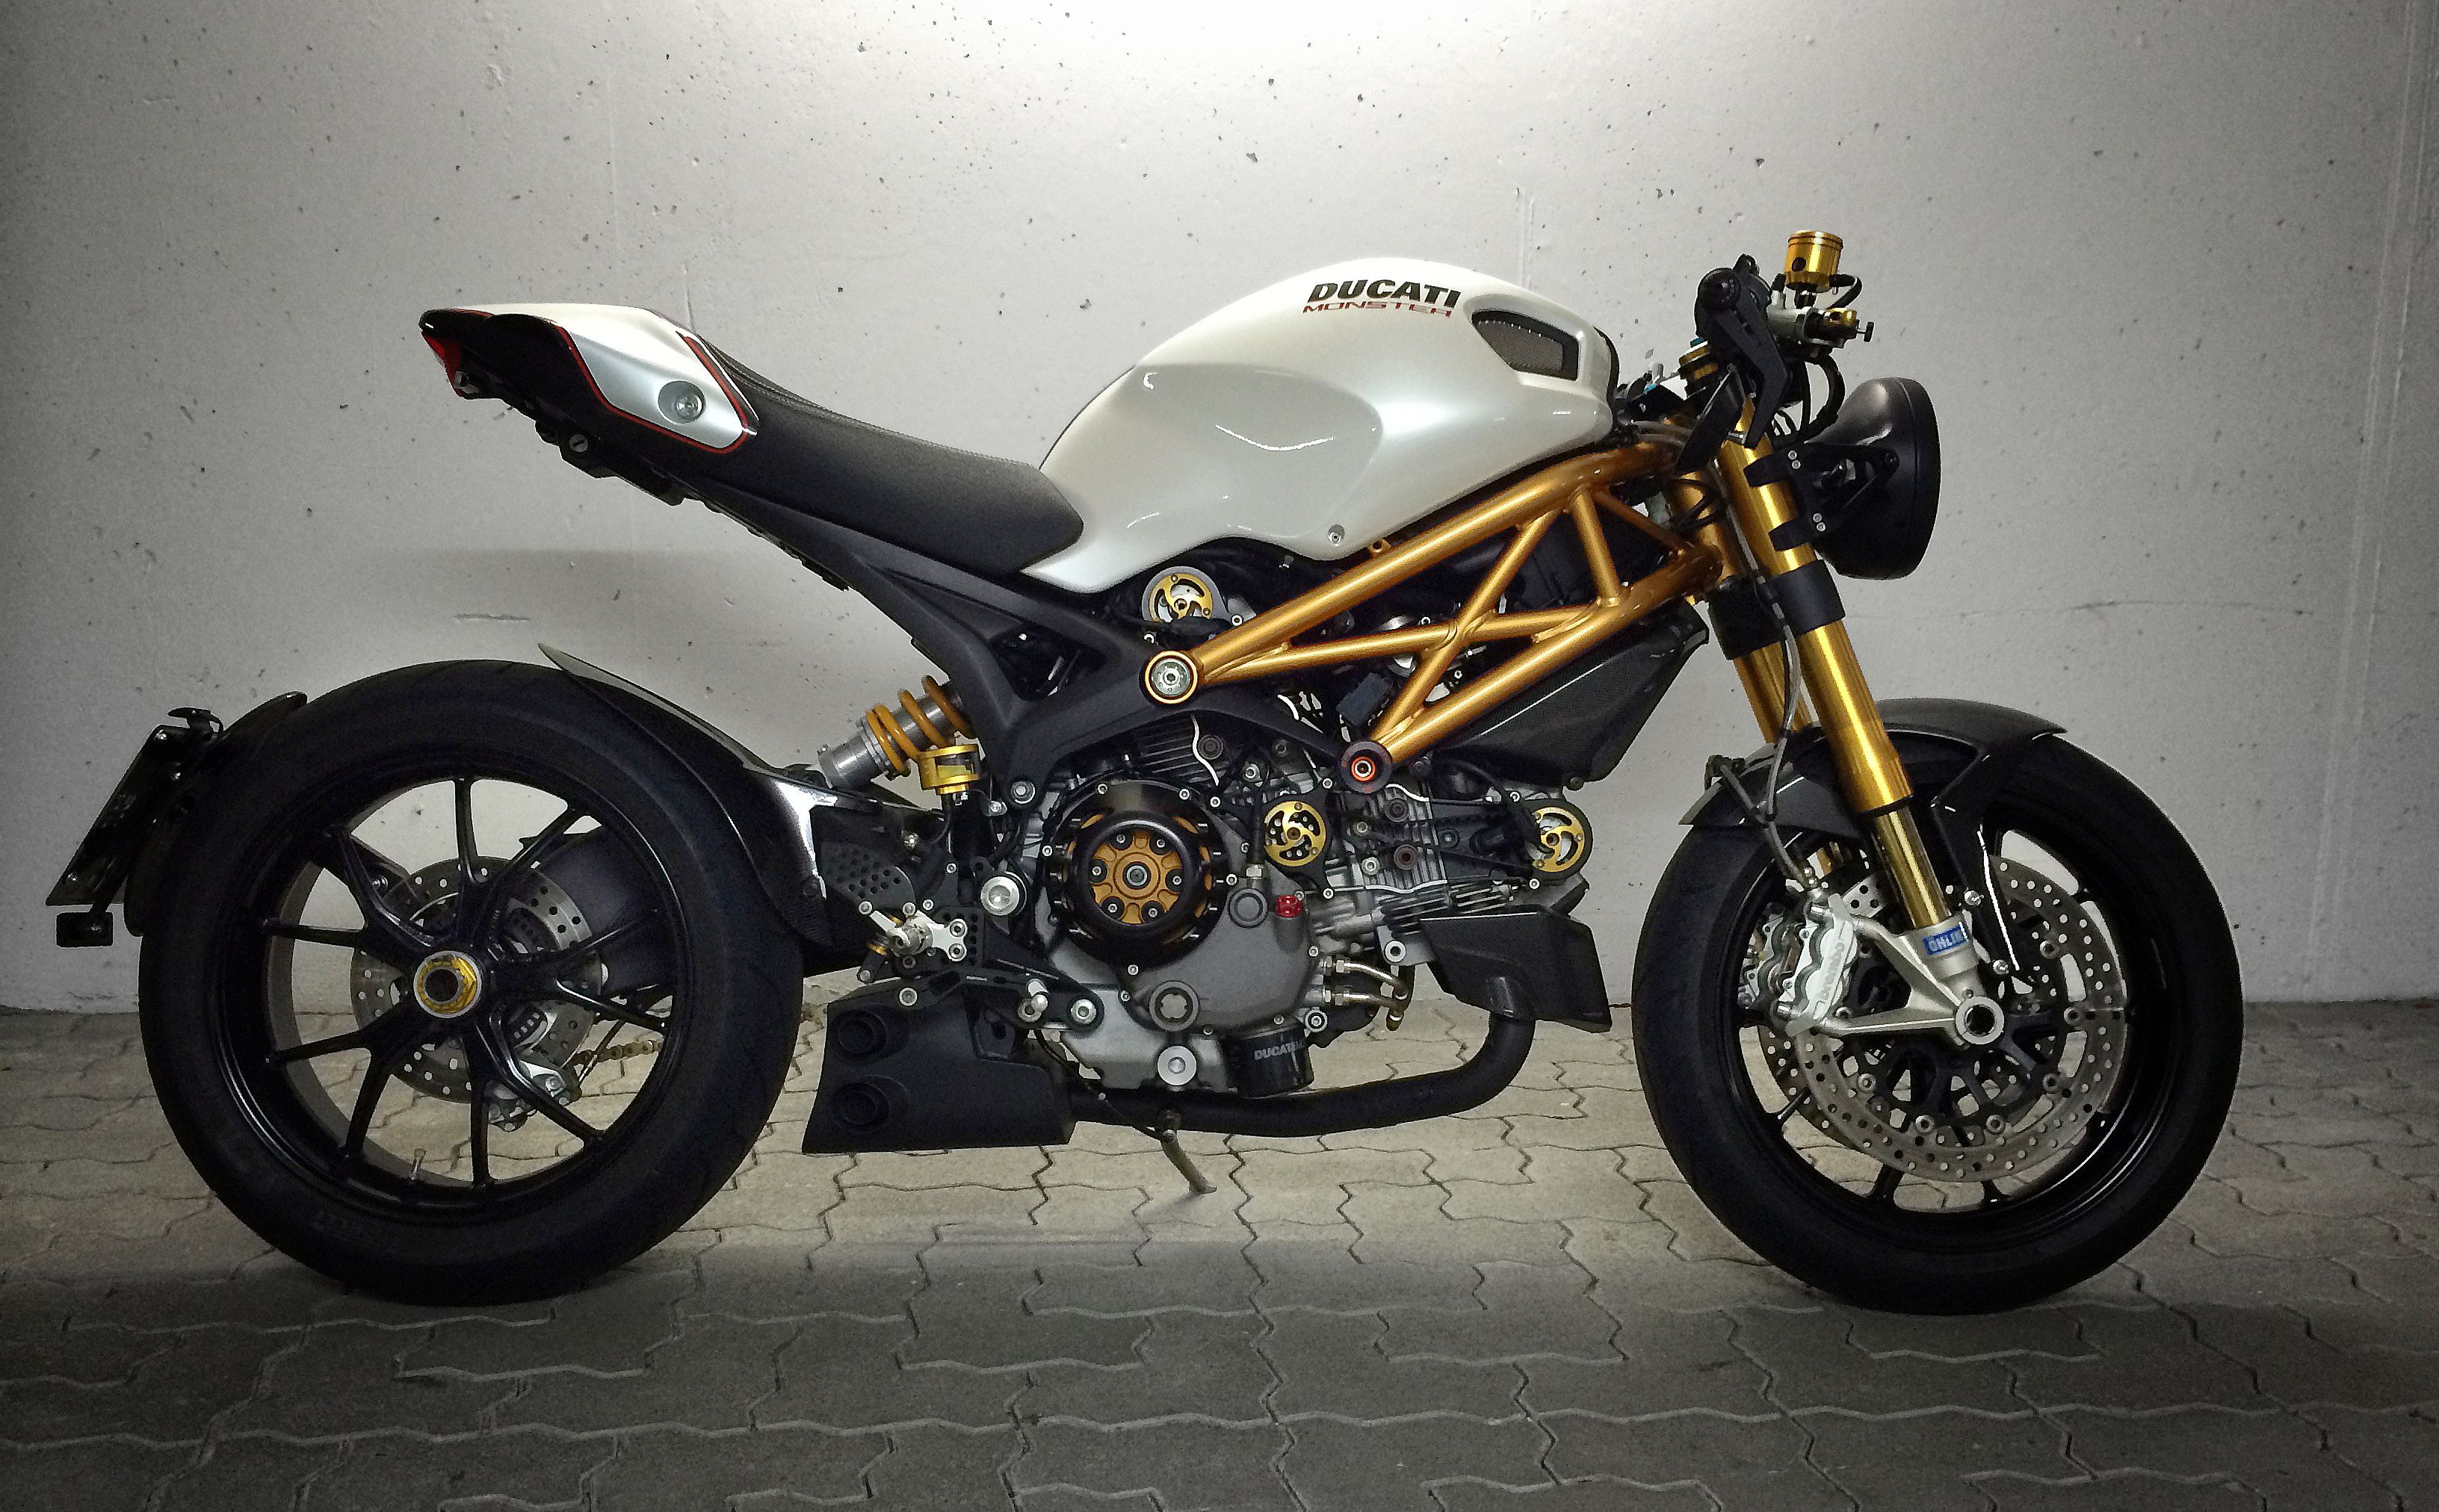 ducati monster 1100s motorcycles pinterest ducati monster ducati and monsters. Black Bedroom Furniture Sets. Home Design Ideas